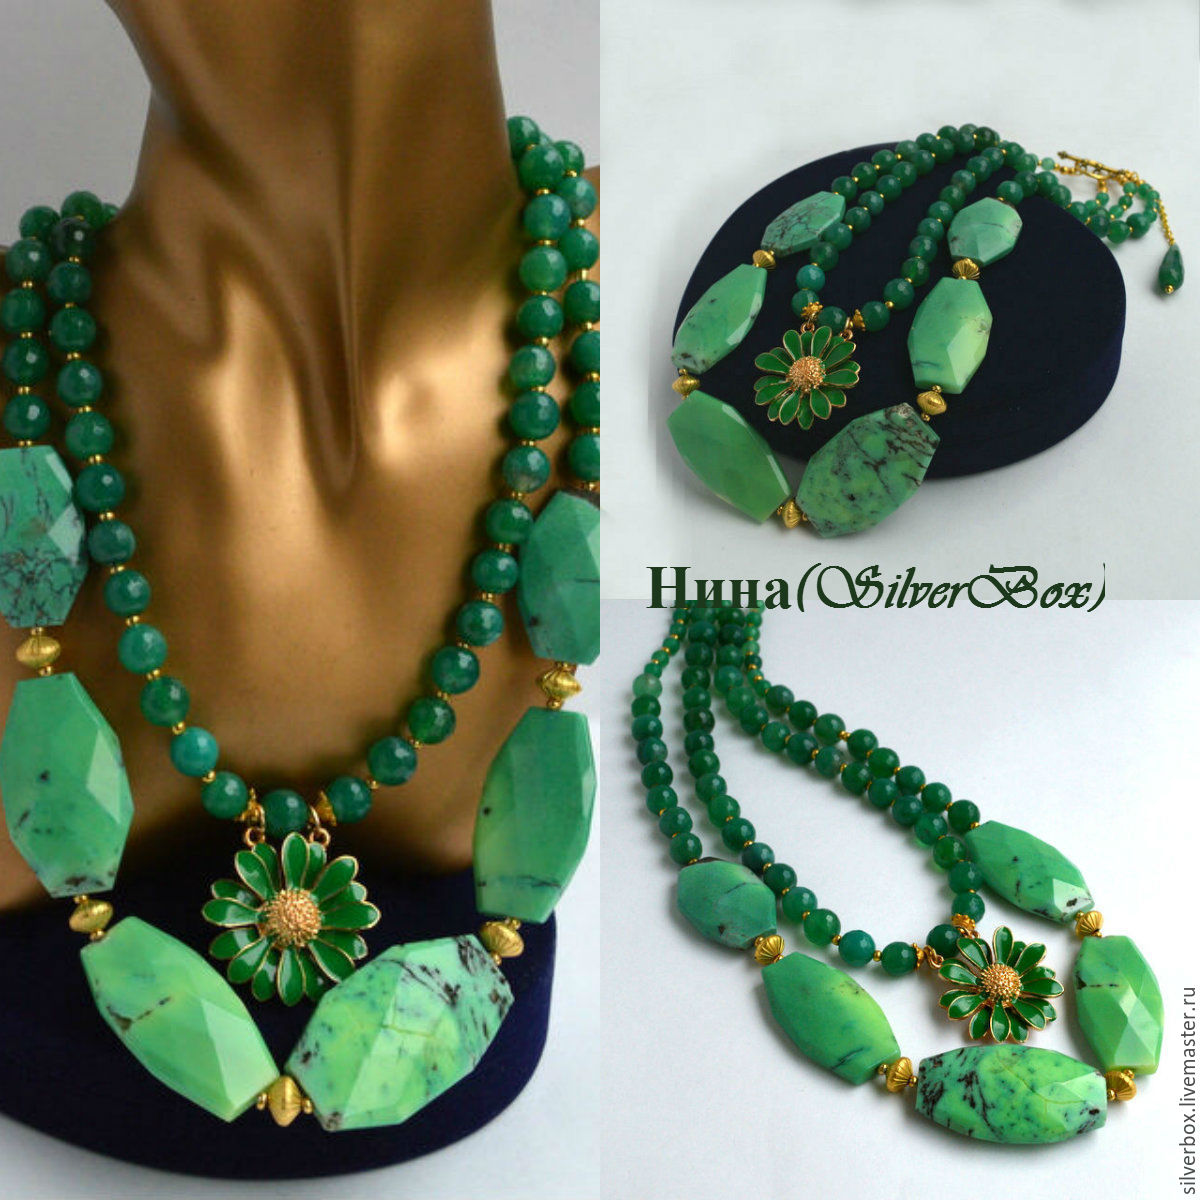 metamophosis and upscale drops tourmaline false necklace crop green article jewellery high v chrysoprase a with vuittonchrysoprasisnecklace two featuring louis soothing the vuitton acte subsampling stunning properties scale gemstone